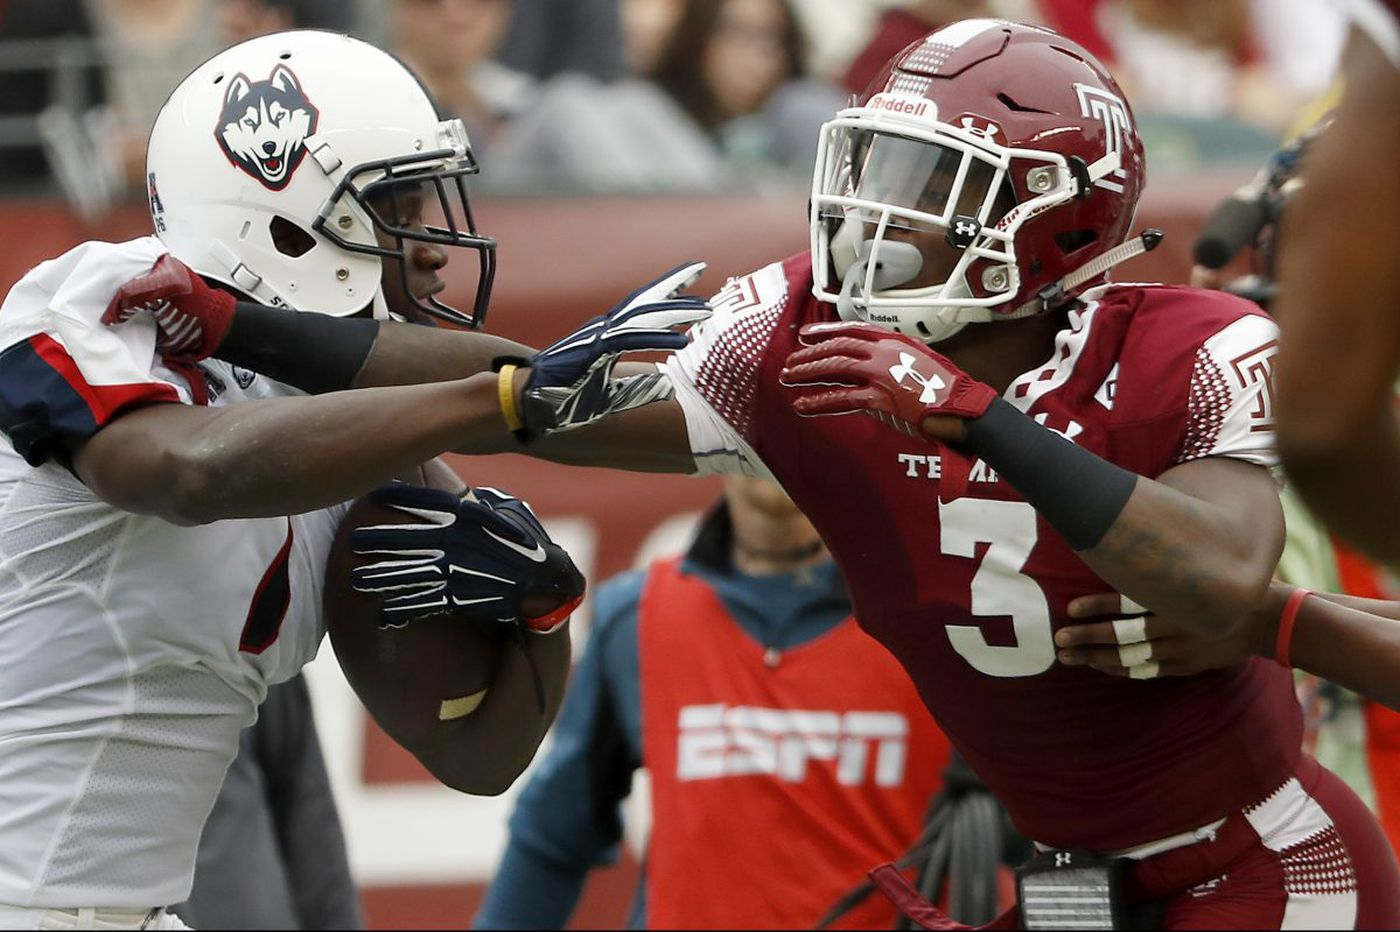 Temple's Sean Chandler: From homeless shelters to football stardom